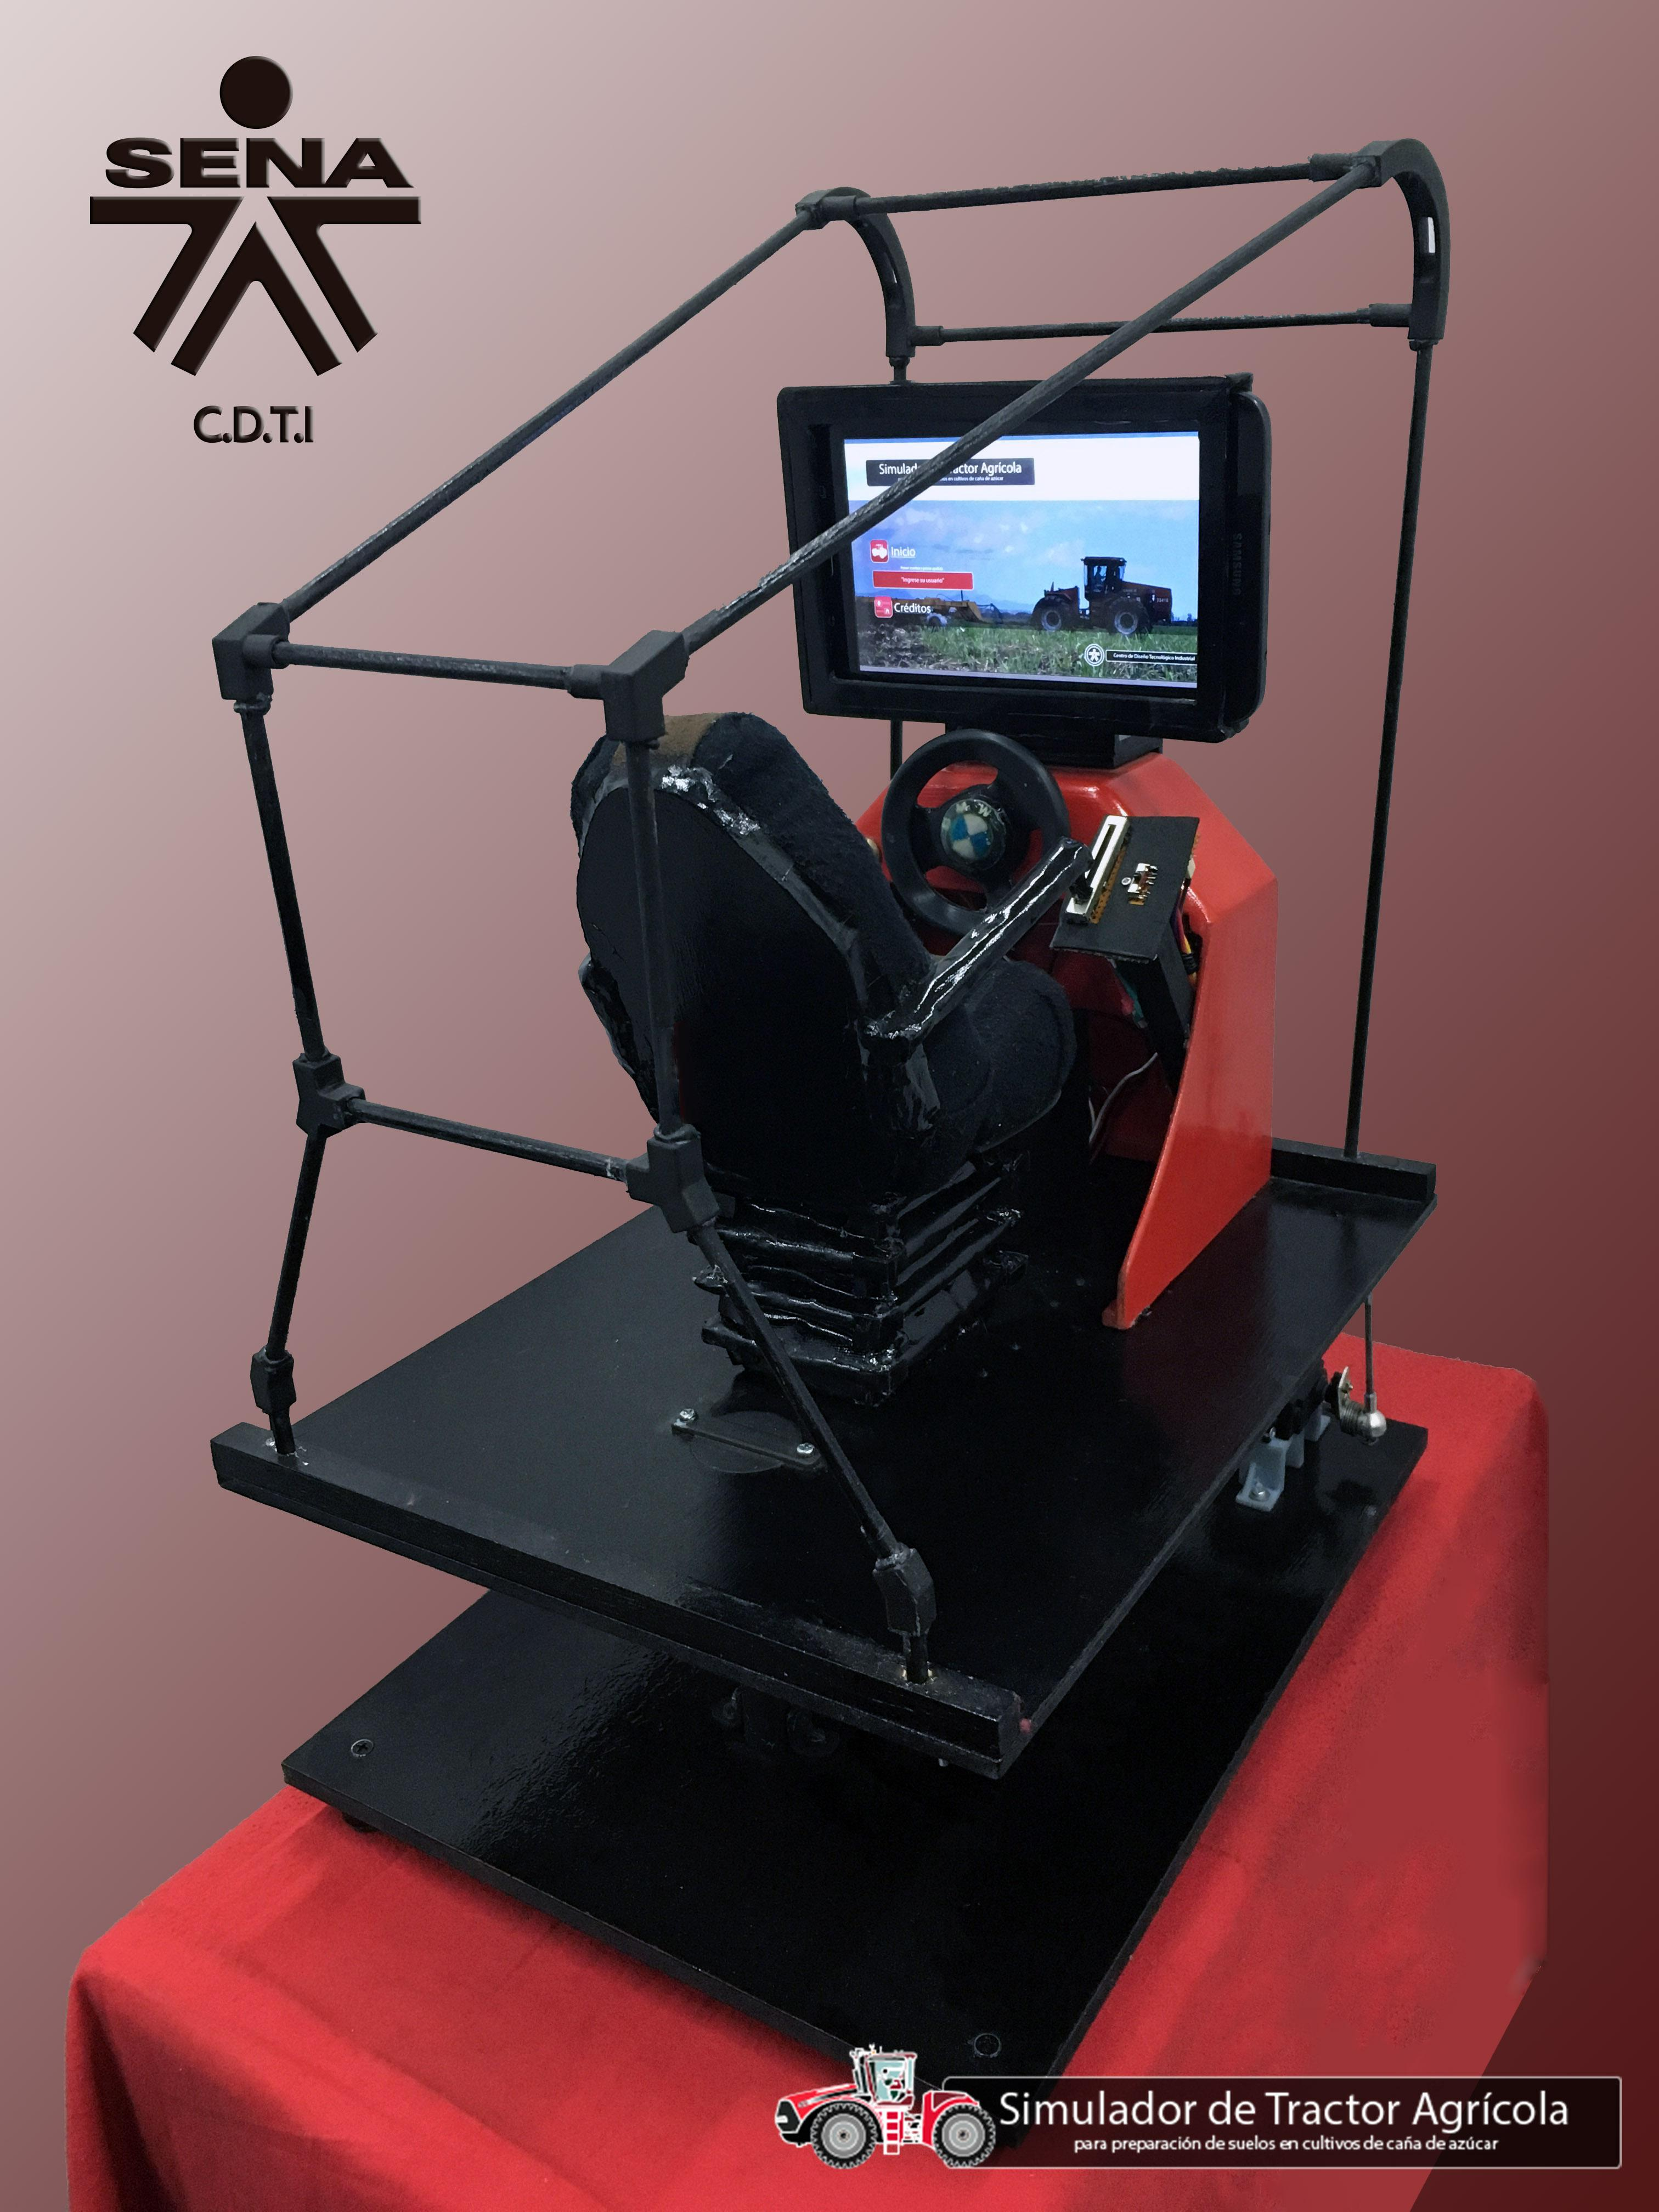 Design and Development of a Tractor Simulator as Interactive Learning Platform